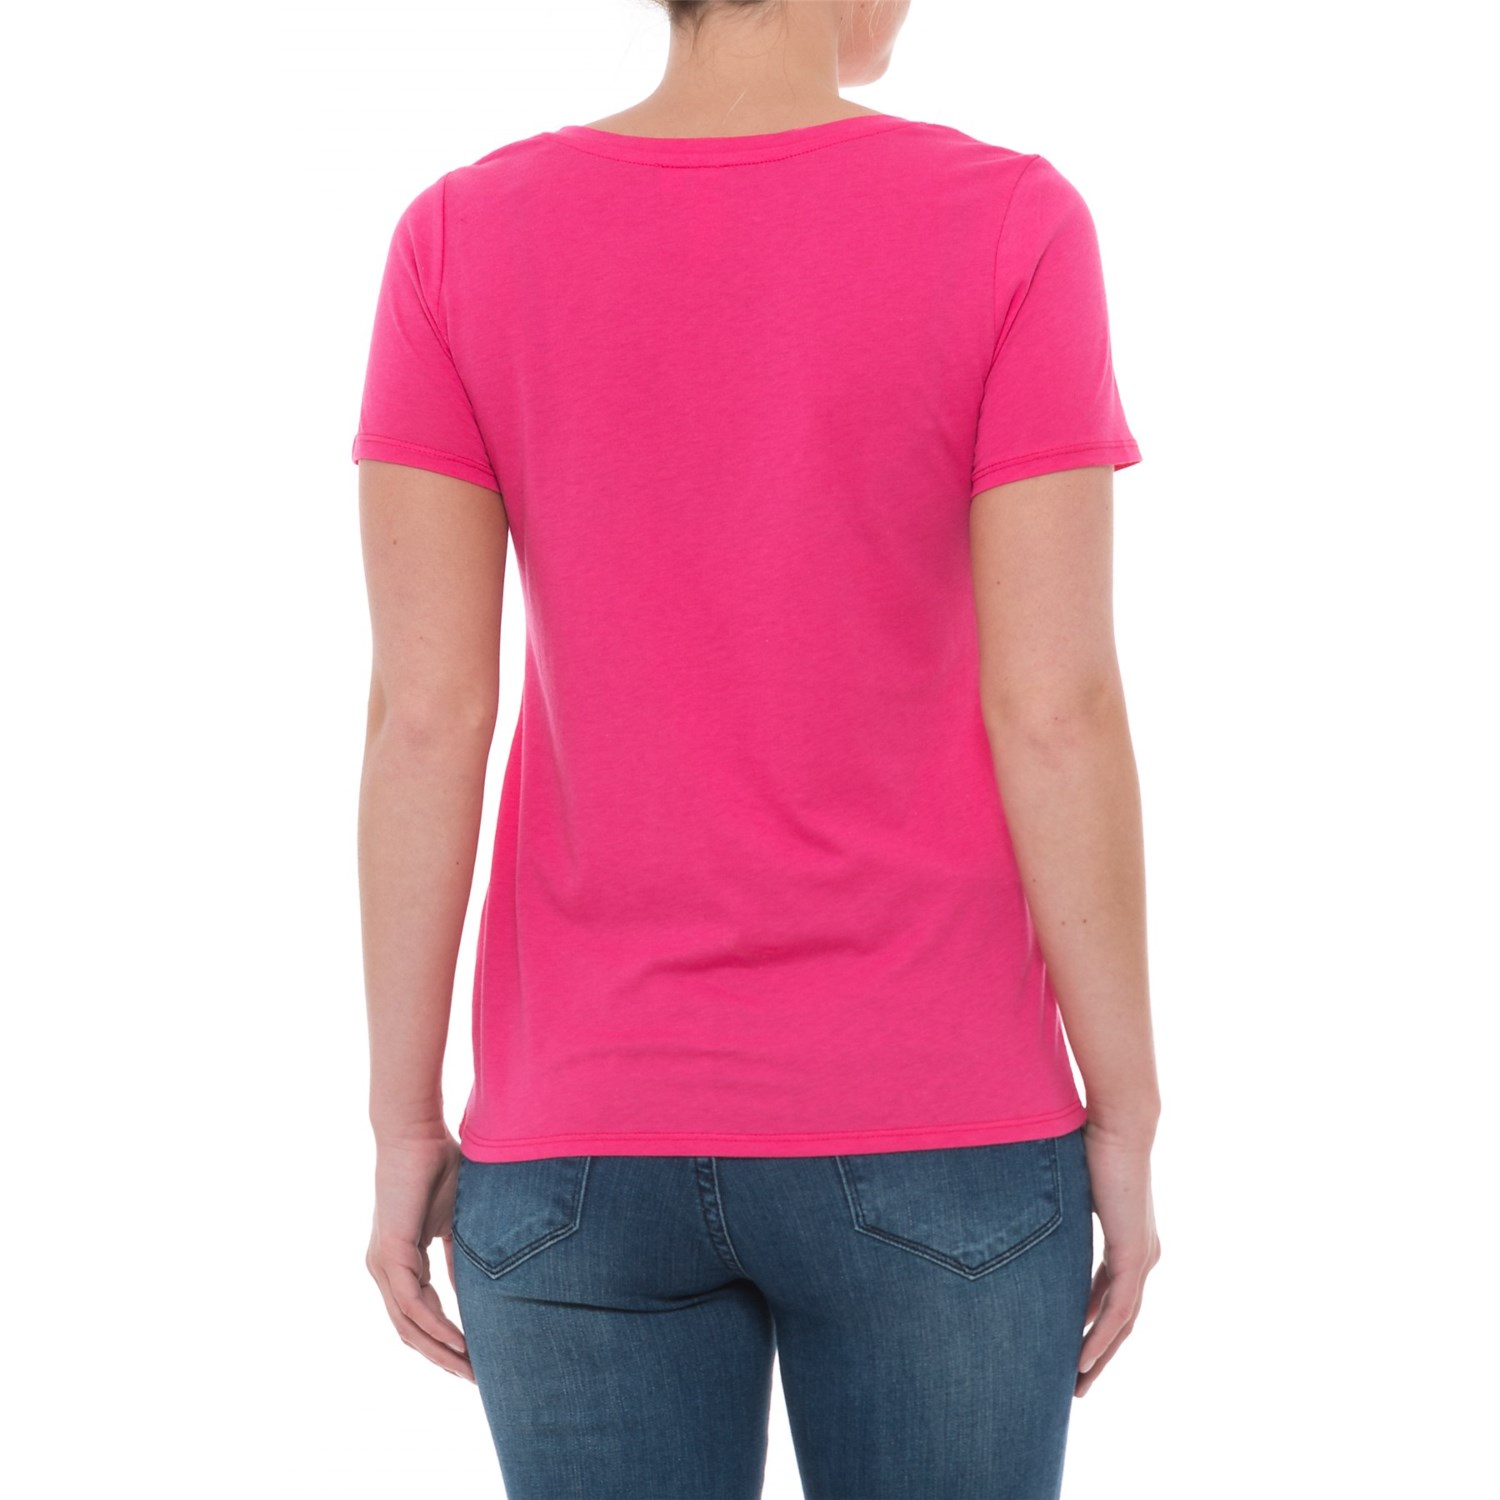 CG Cable & Gauge Jersey T-Shirt (For Women) - Save 31%